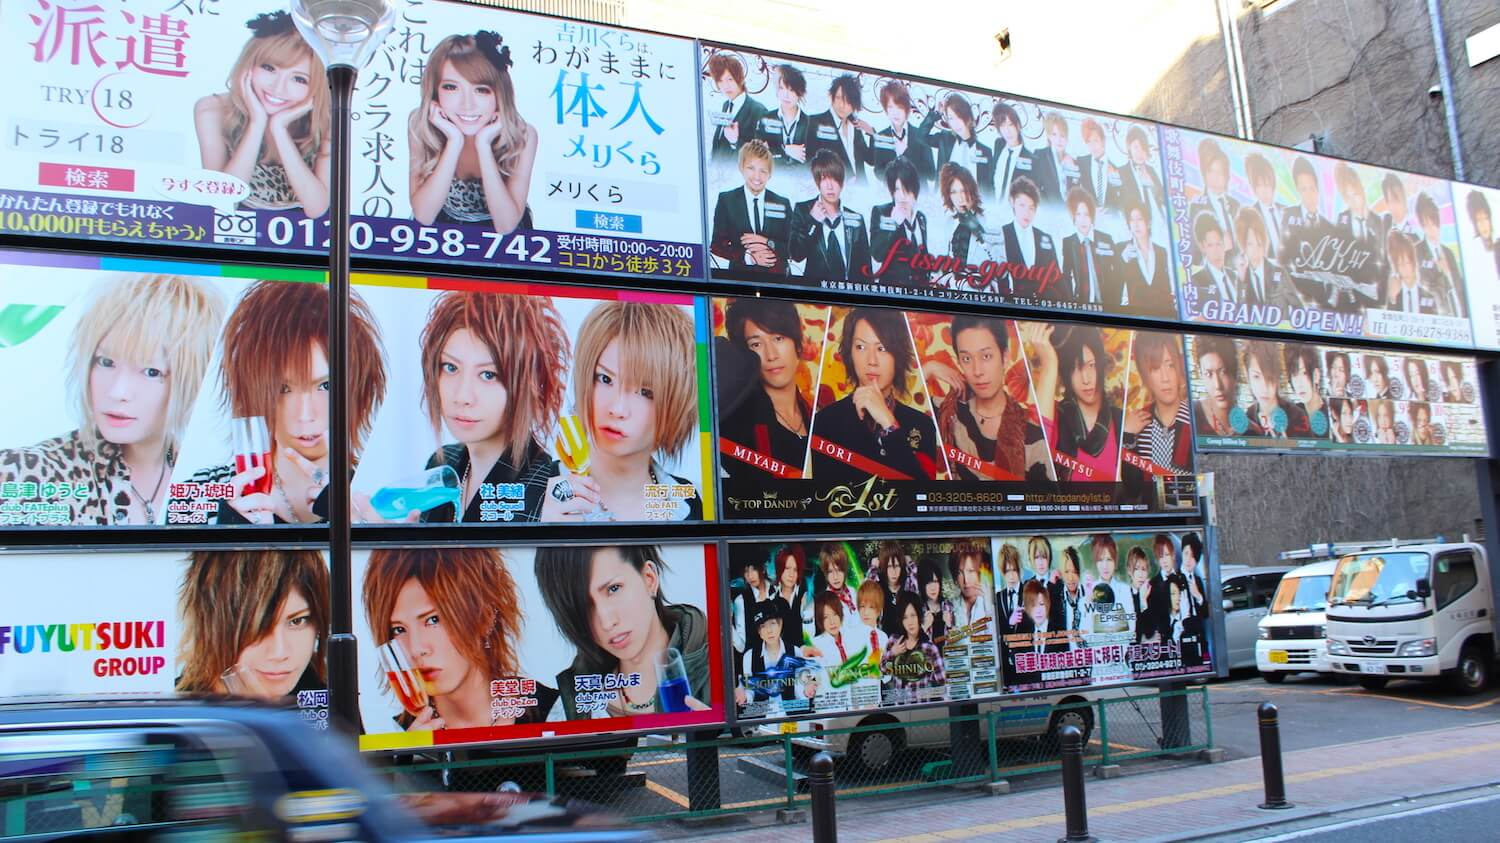 shinjuku kabuchiko host hostess billboard